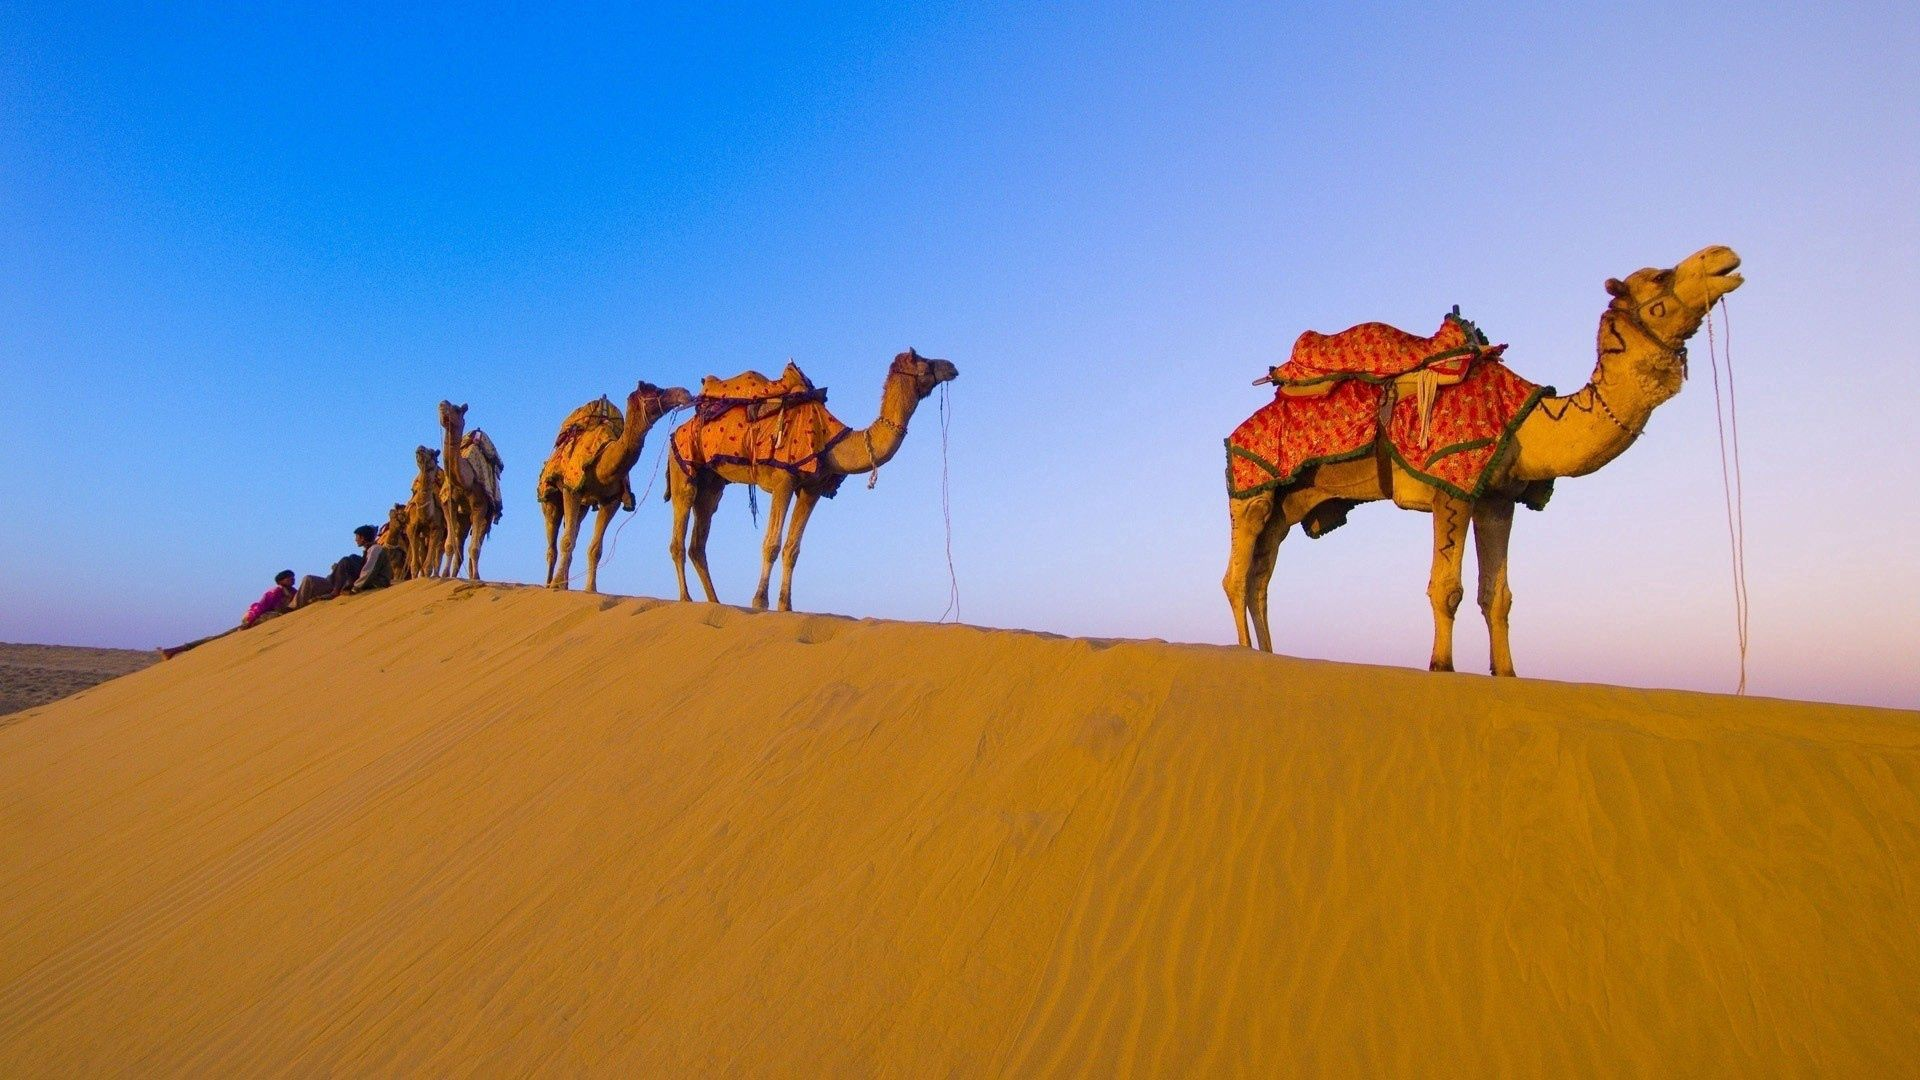 95945 download wallpaper Animals, Caravan, Hike, Campaign, Desert, Camels screensavers and pictures for free